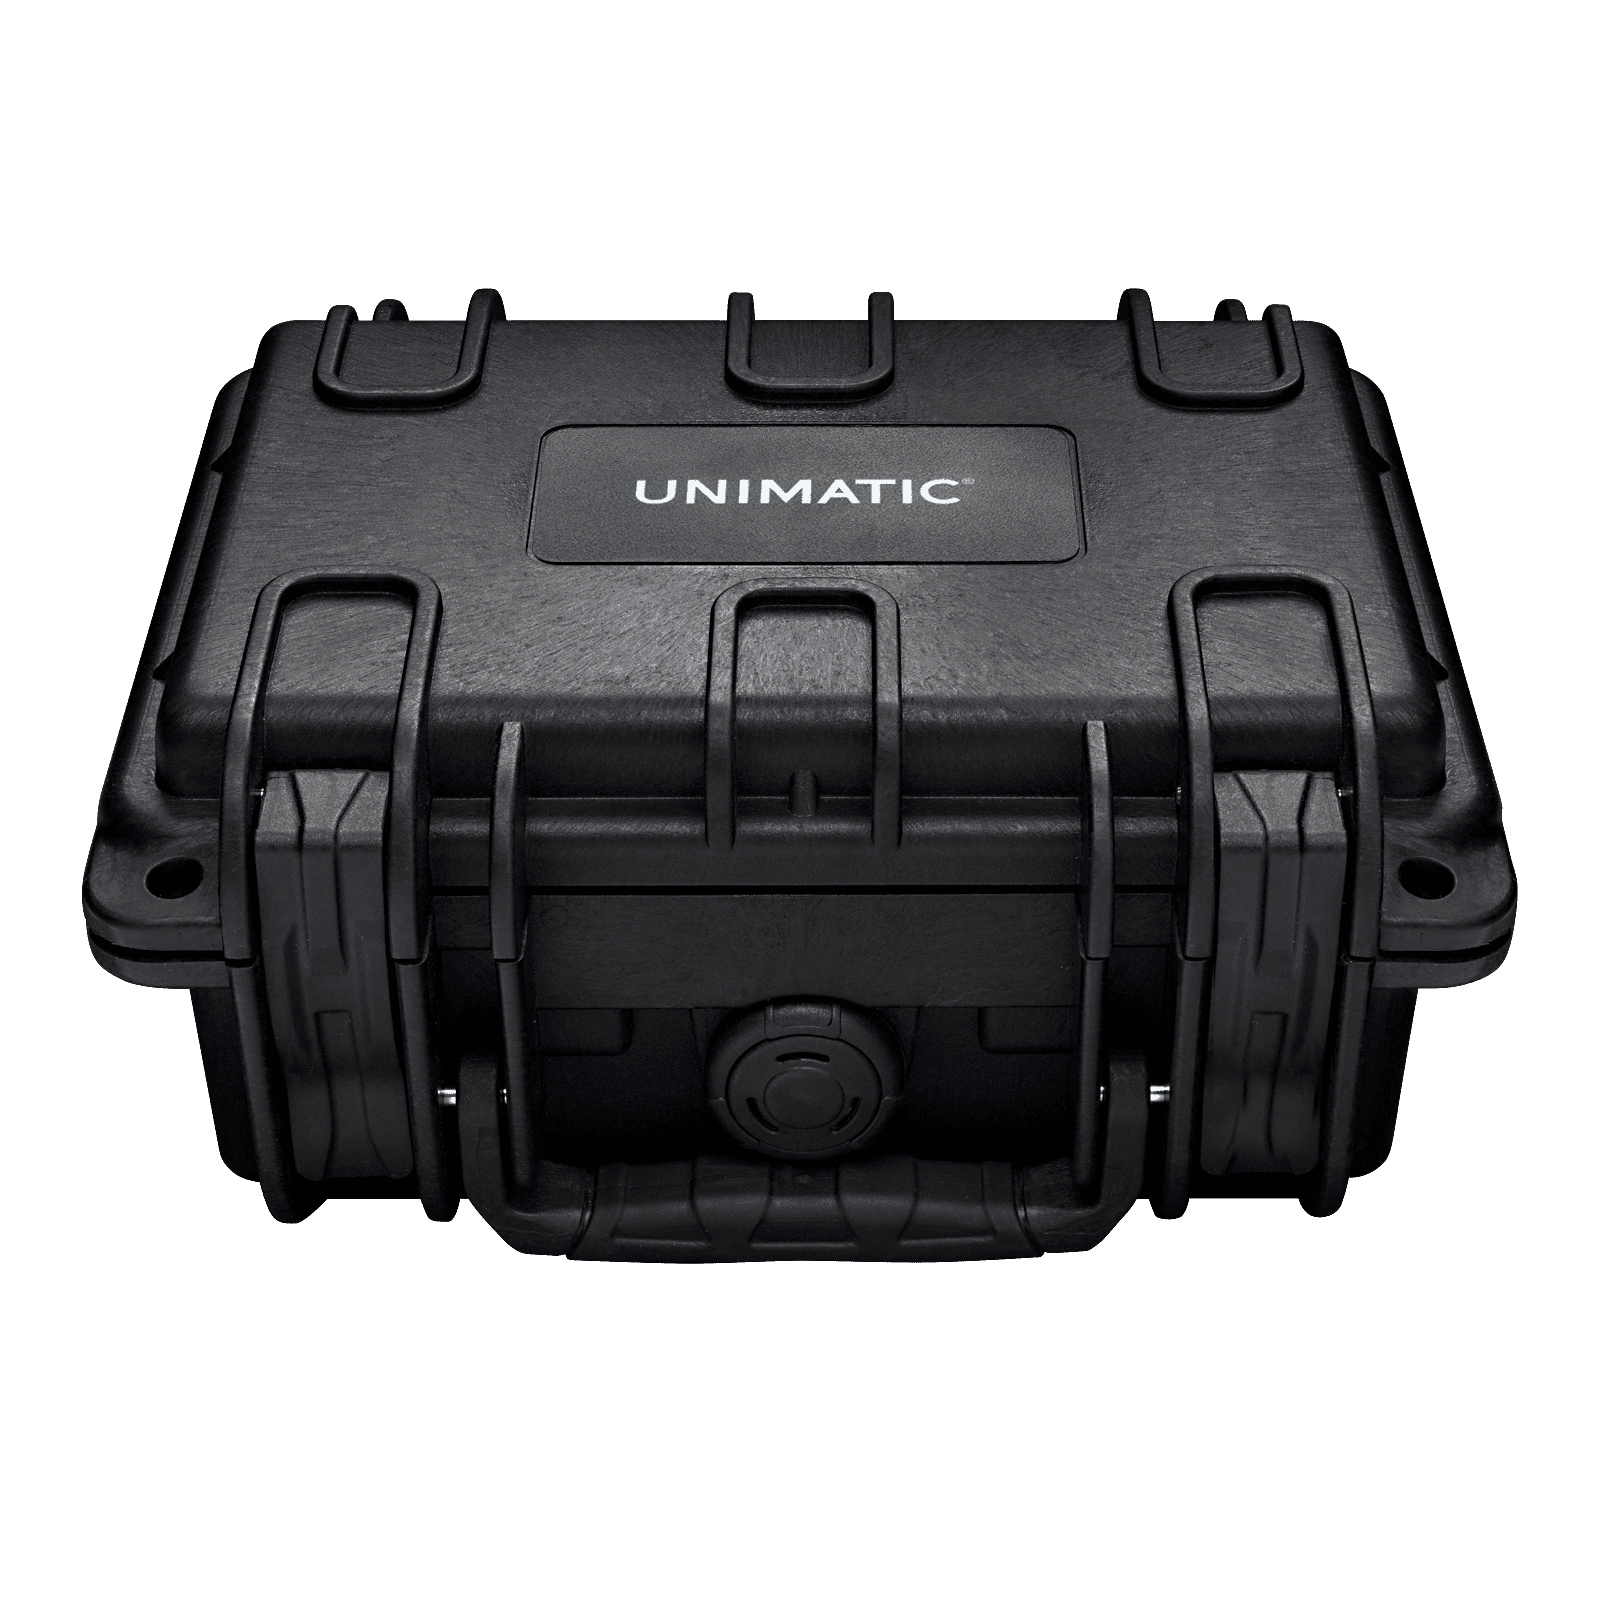 Unimatic Limited Edition Watches